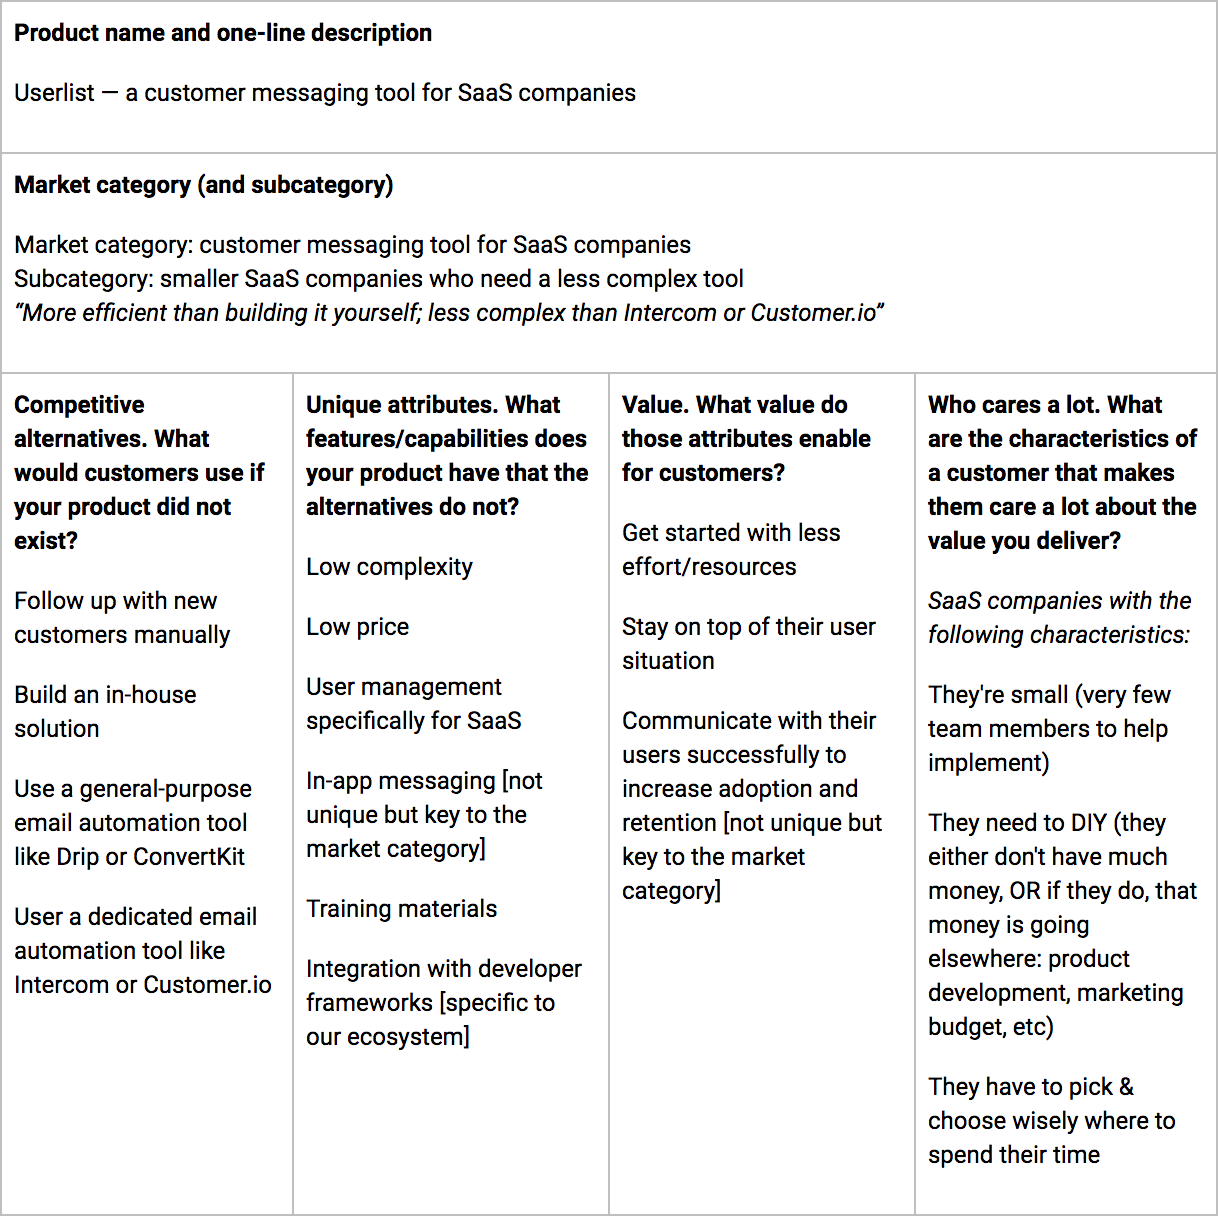 April Dunford's Positioning Canvas for Userlist